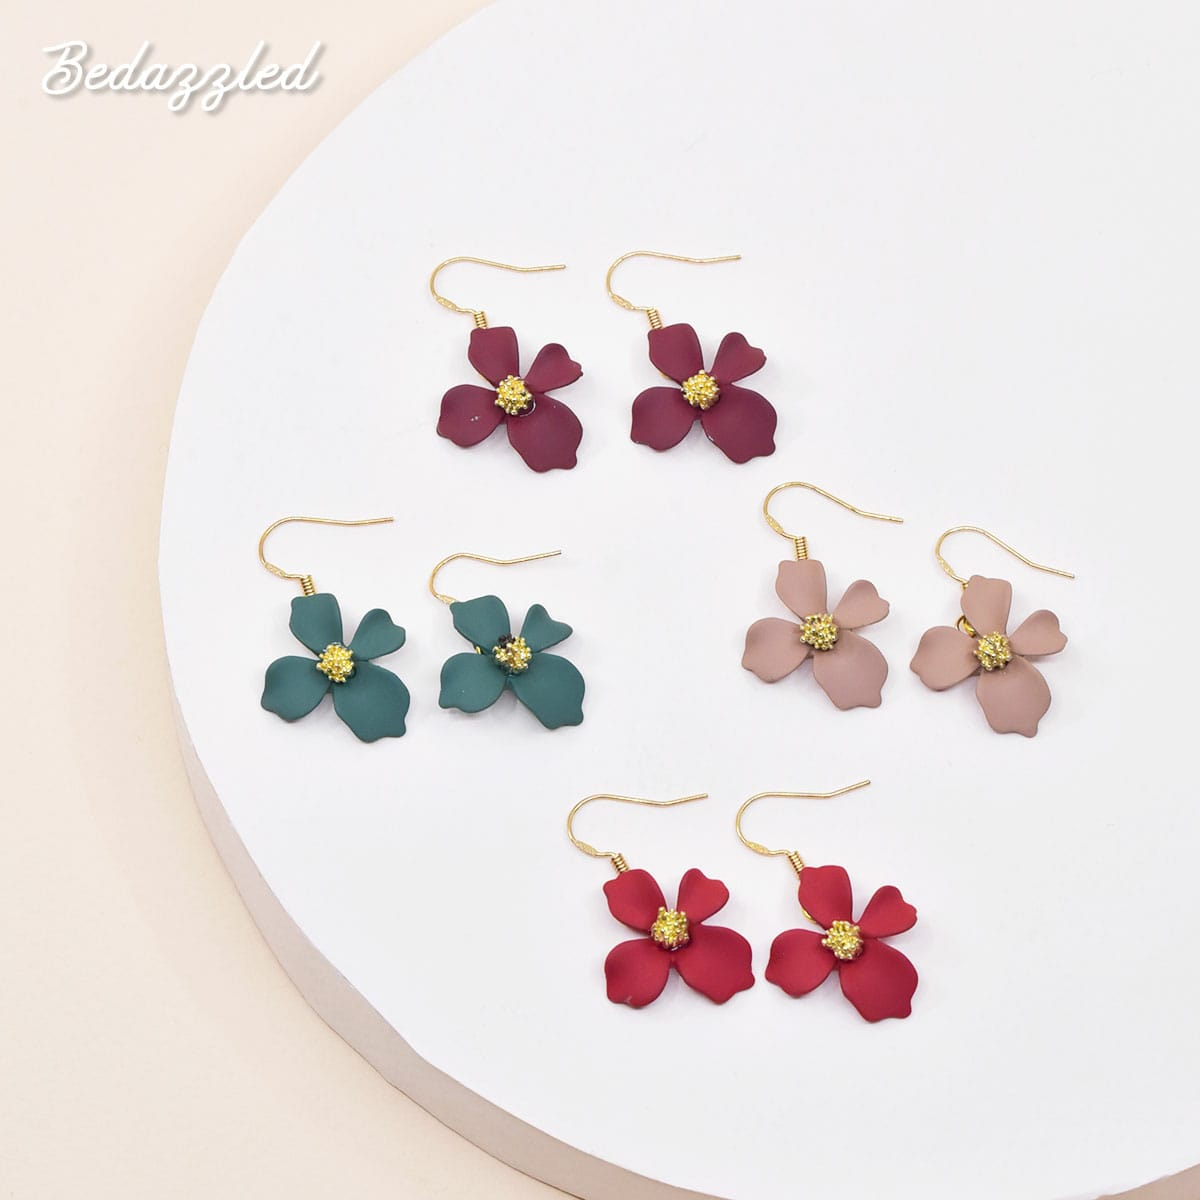 Dangling Flower 6 - Earrings